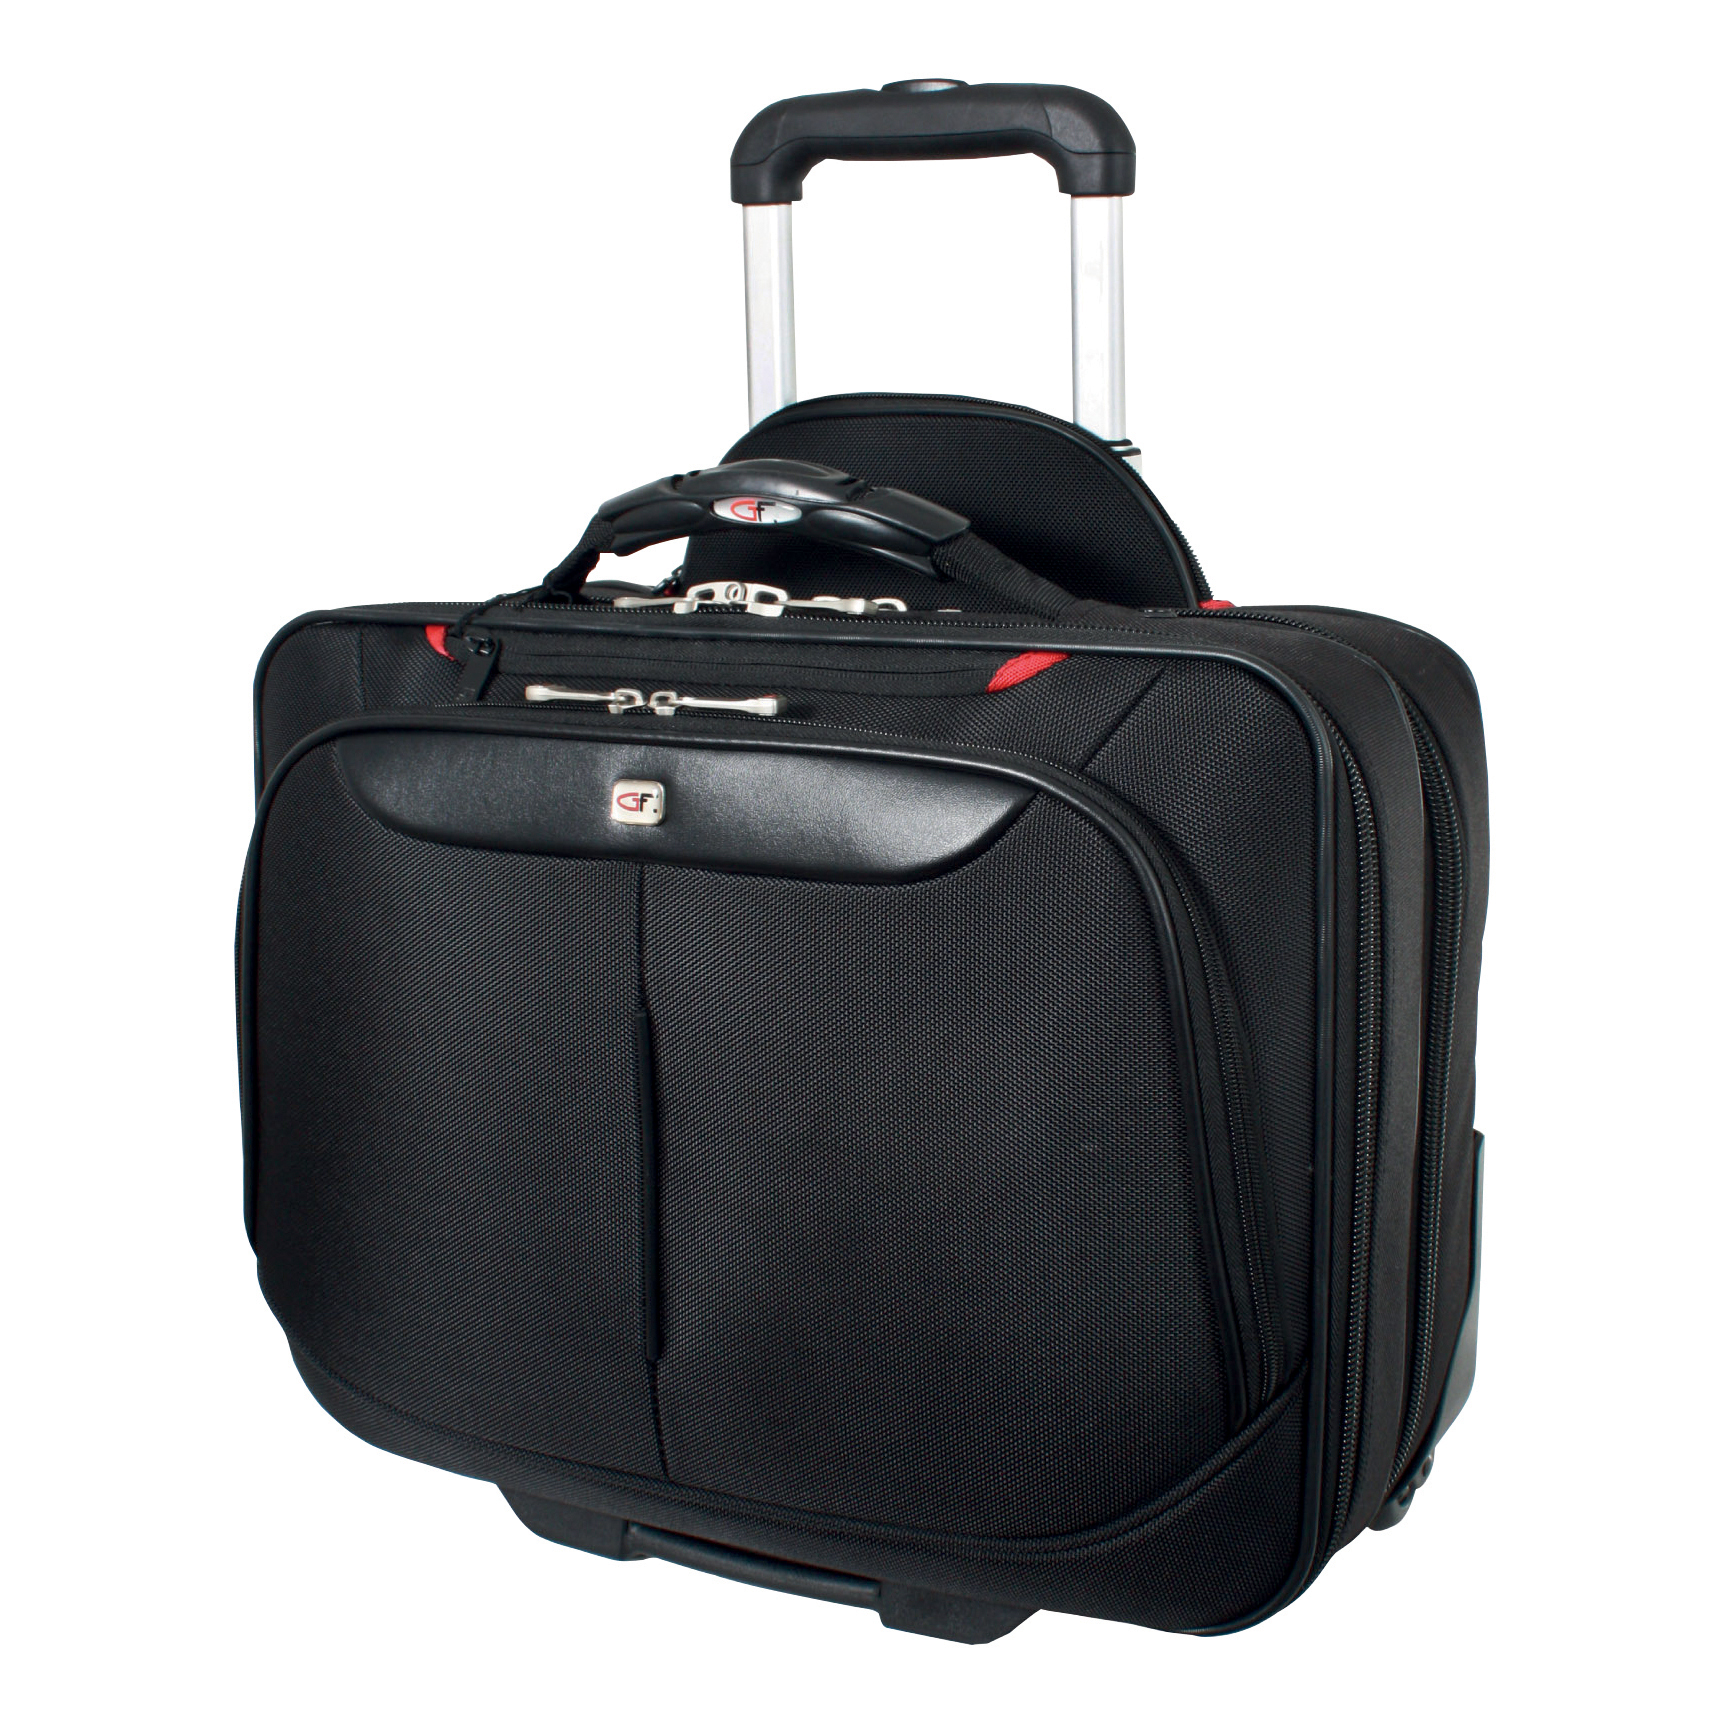 Gino Ferrari Brooklyn Business Bag Padded Wheeled On-board Size 16in Laptop Black Ref GF565